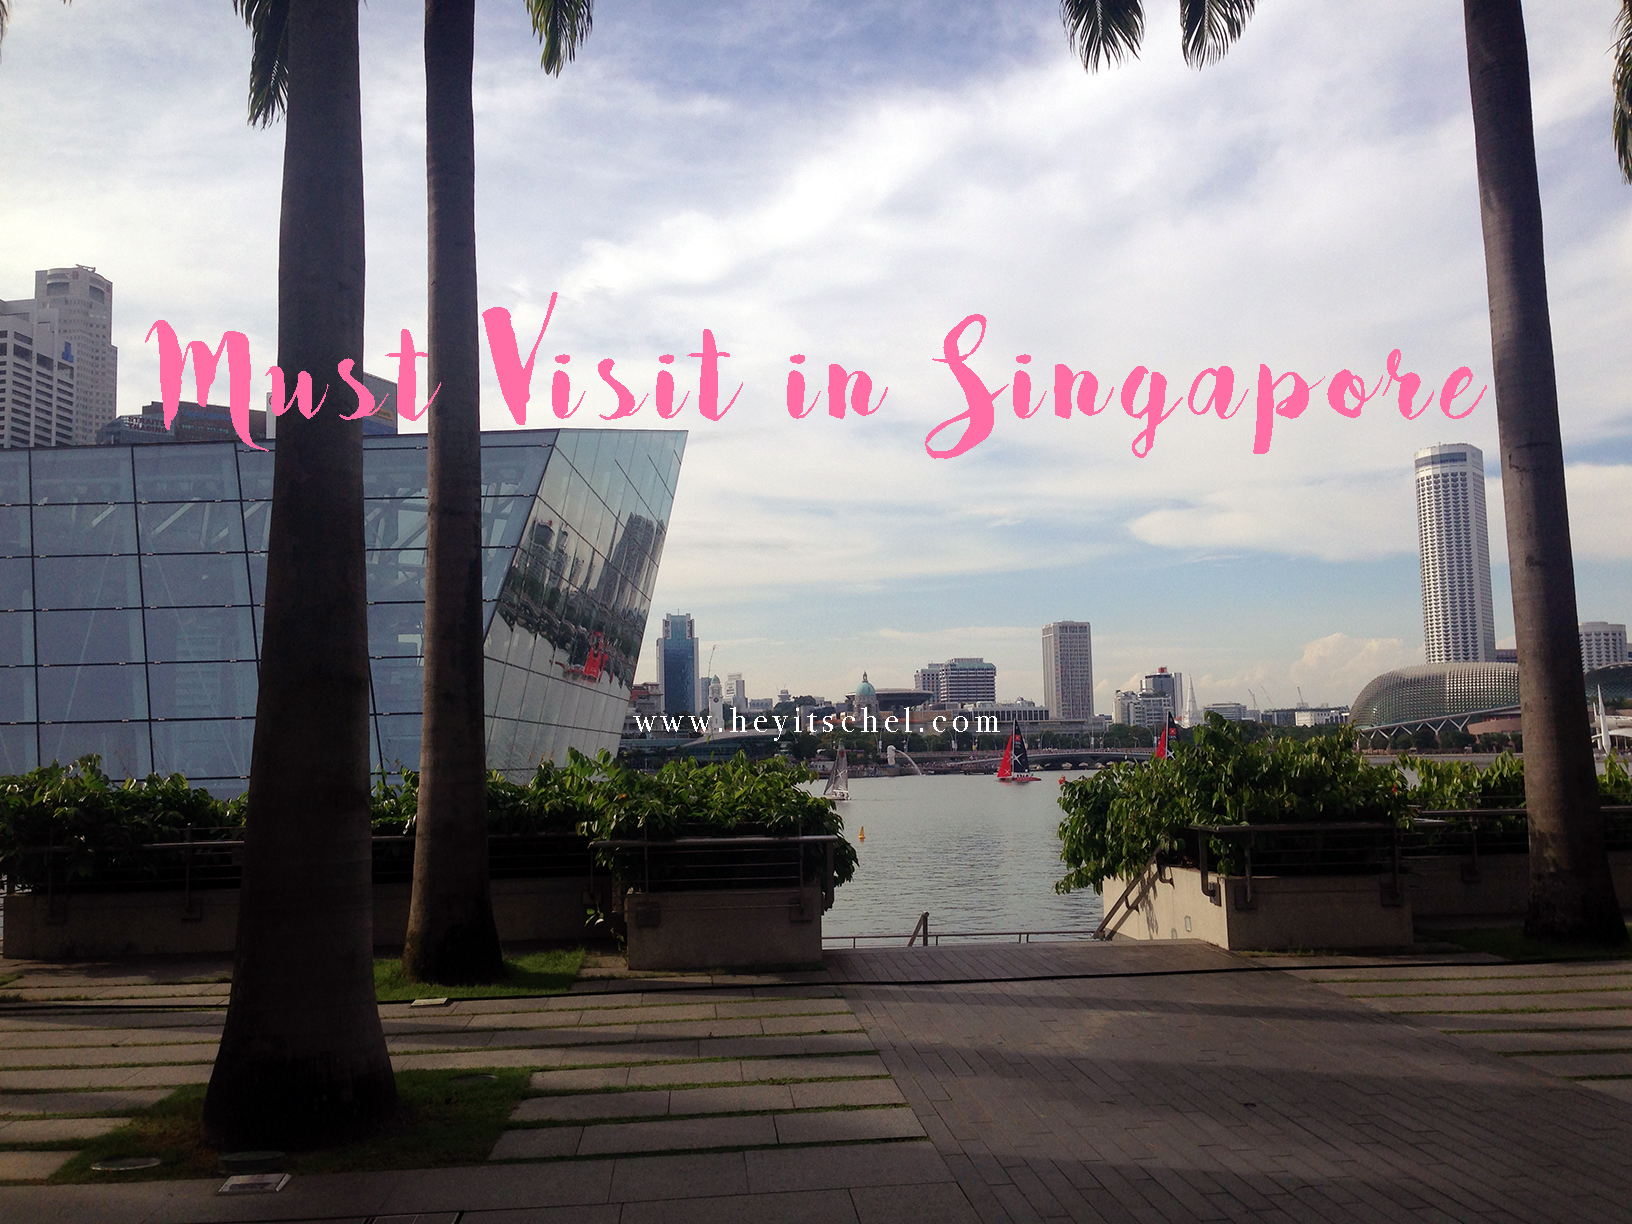 Must Visit in Singapore